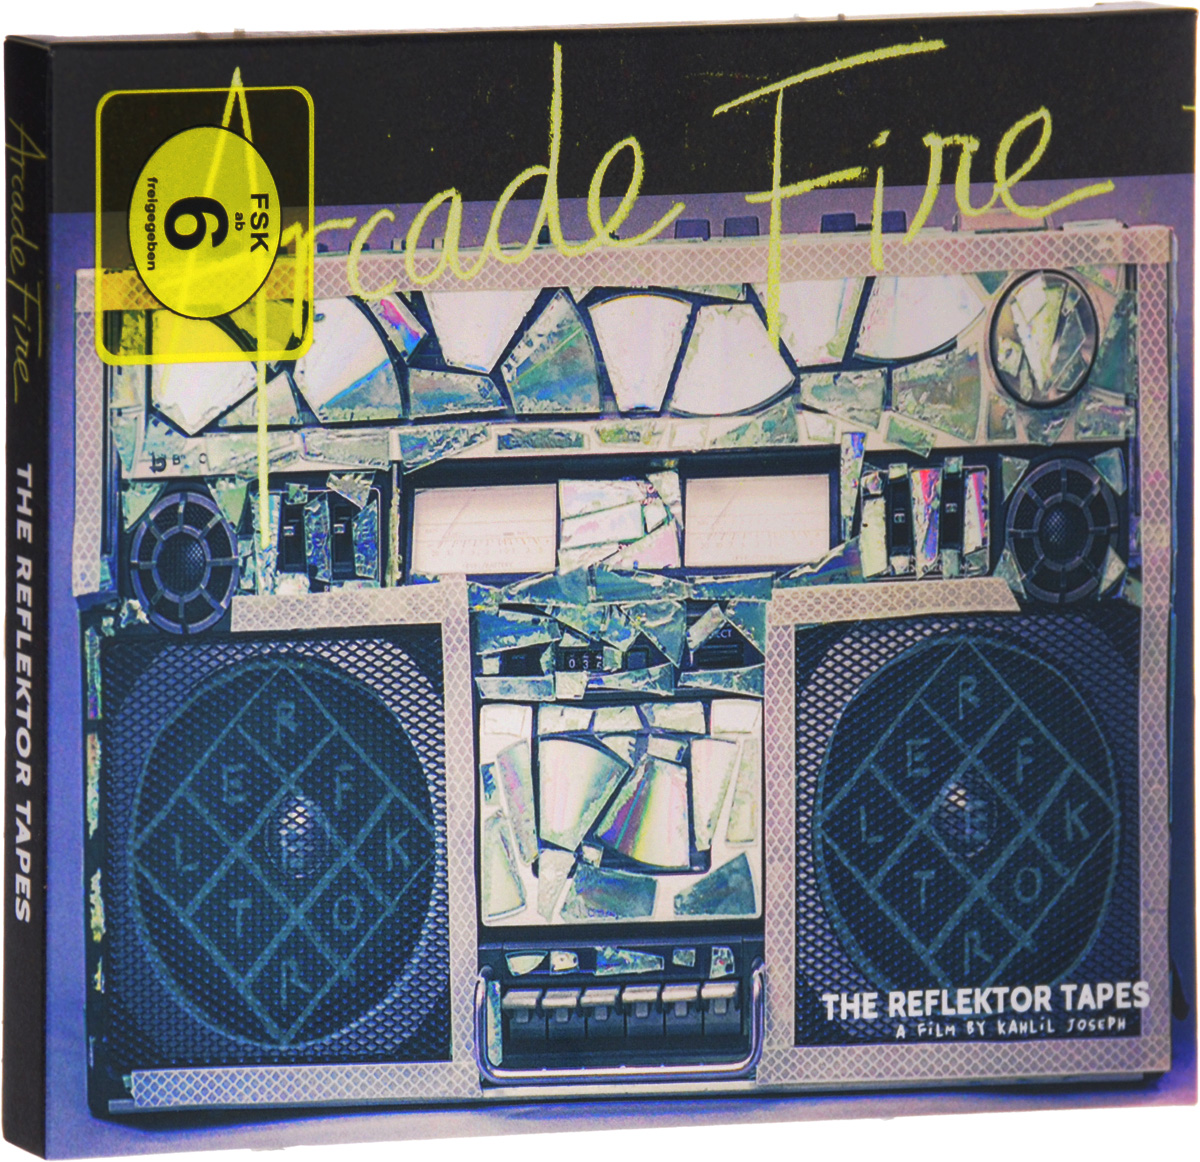 Arcade Fire: The Reflektor Tapes / Live At Earls Court (2 DVD) here comes super bus 2